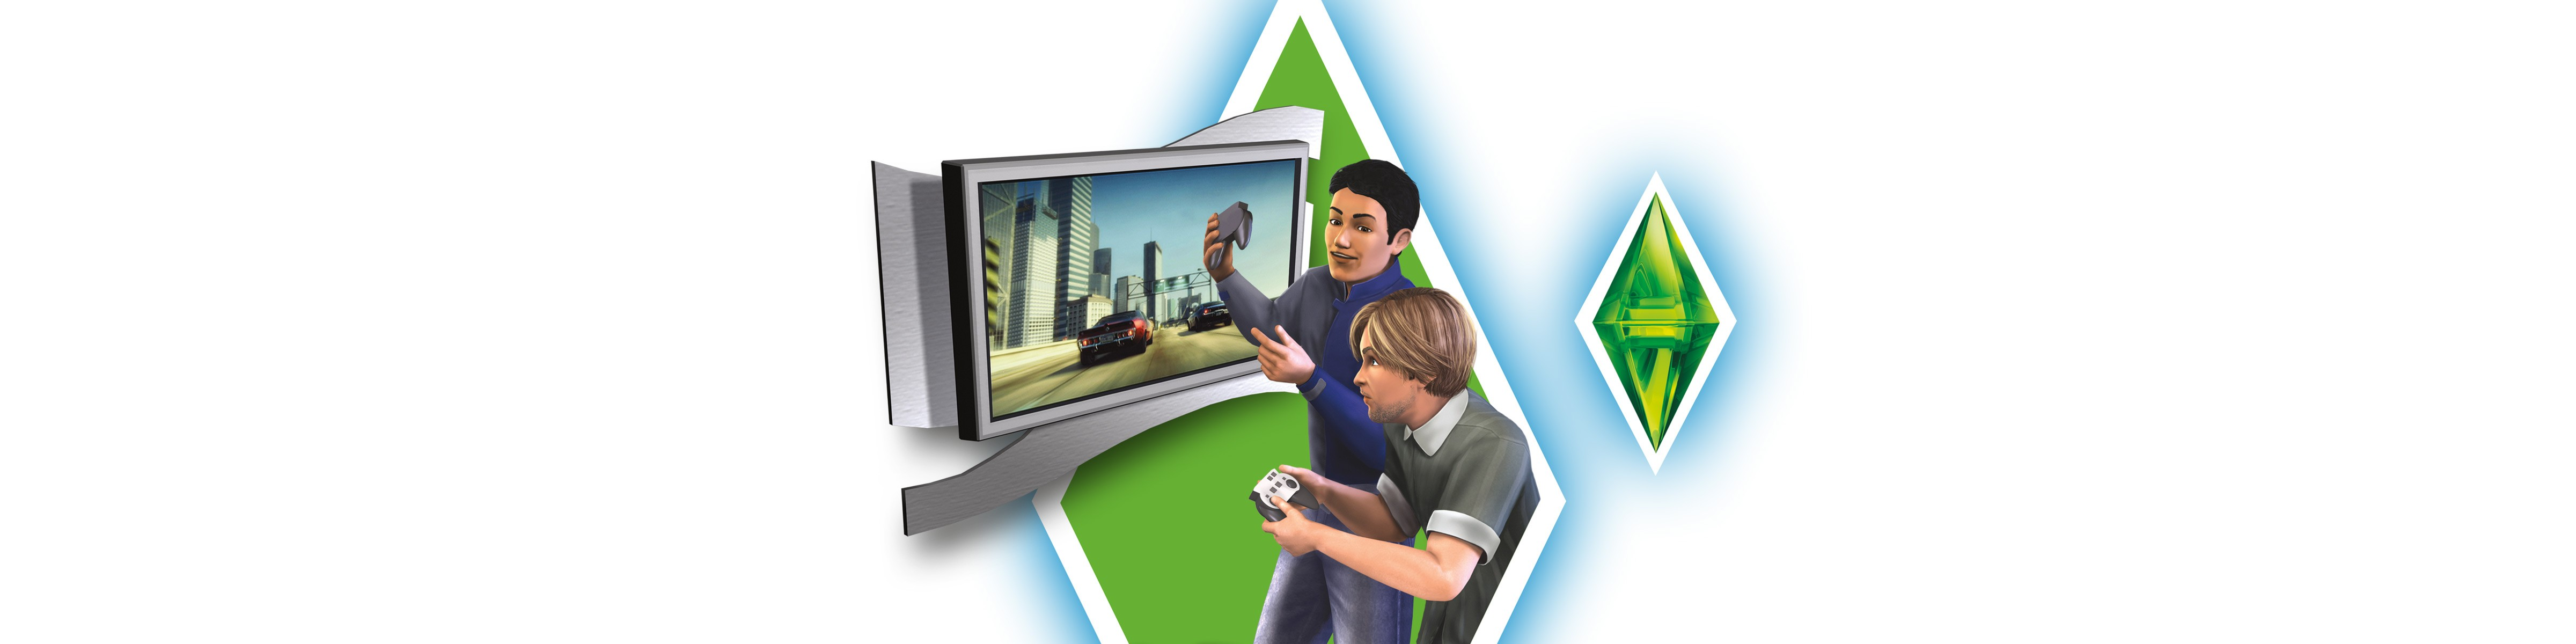 product code for sims 3 supernatural